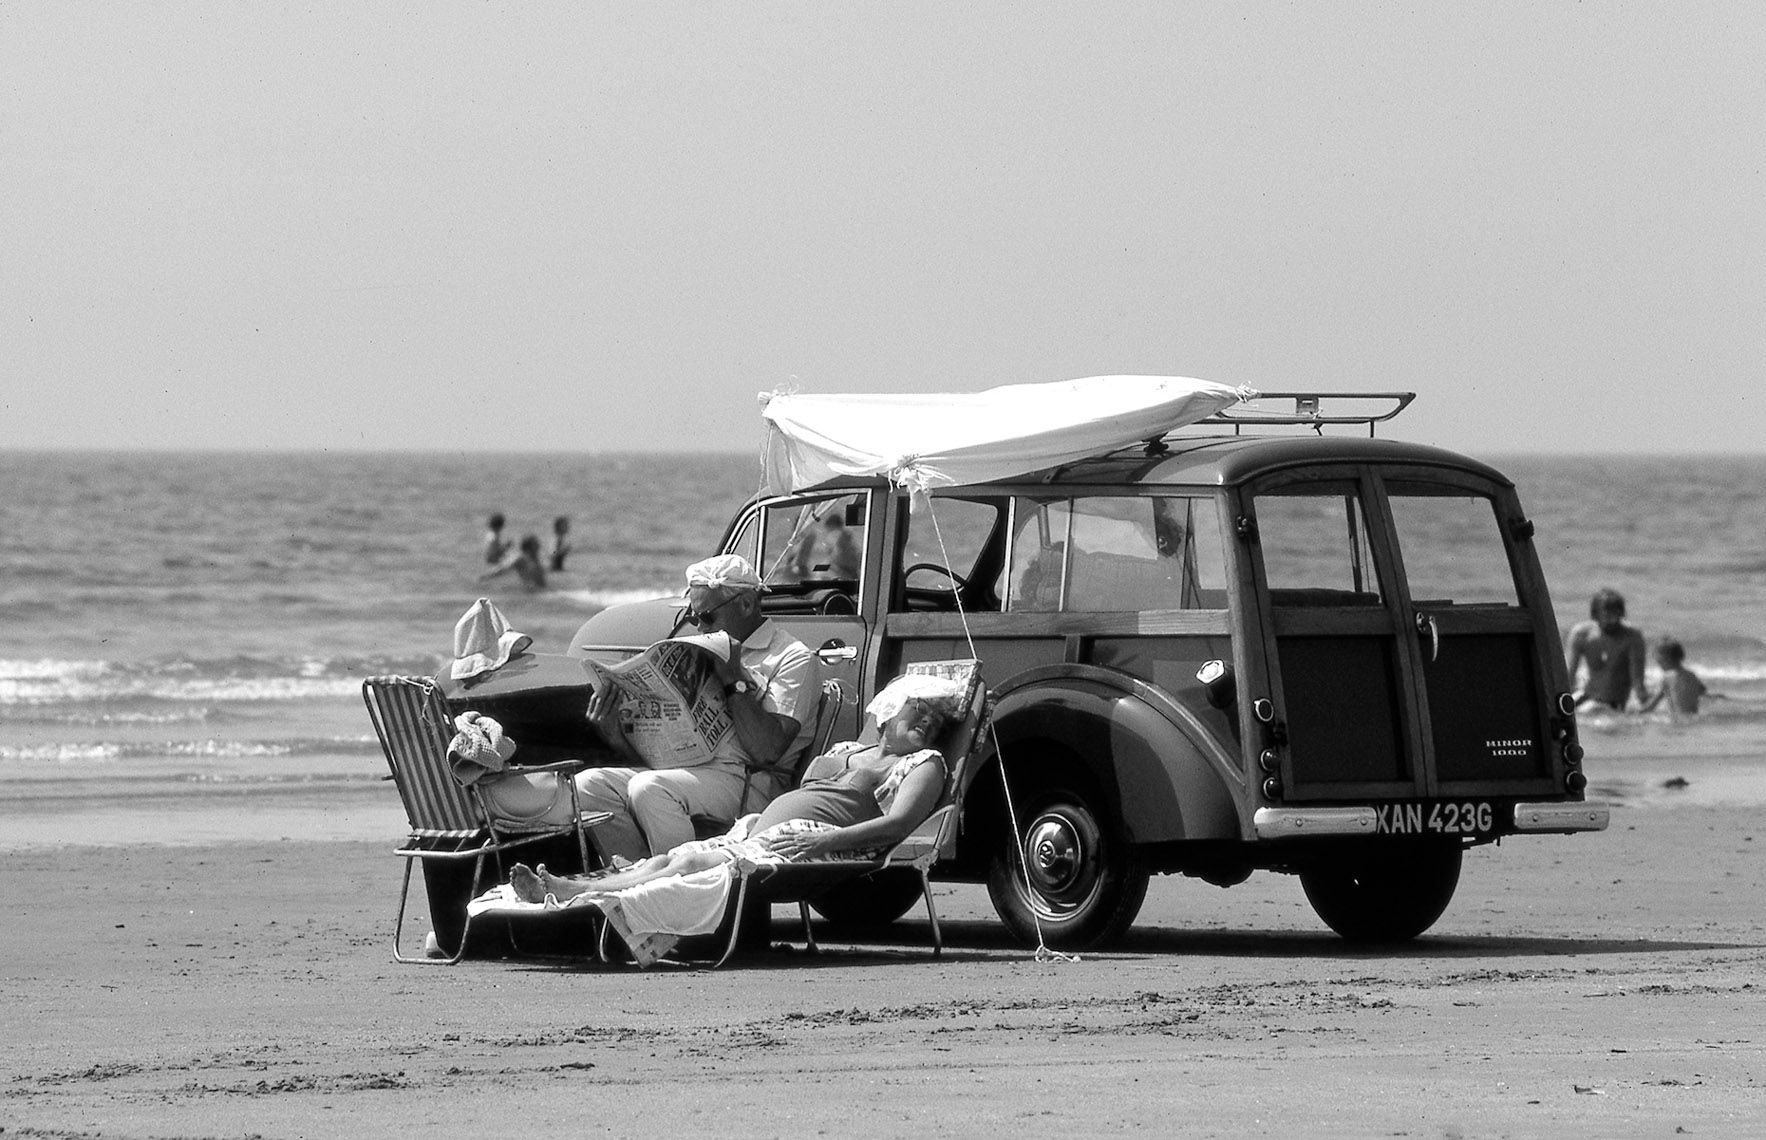 Old Woody, Circa 1960-Thorpe Bay, England